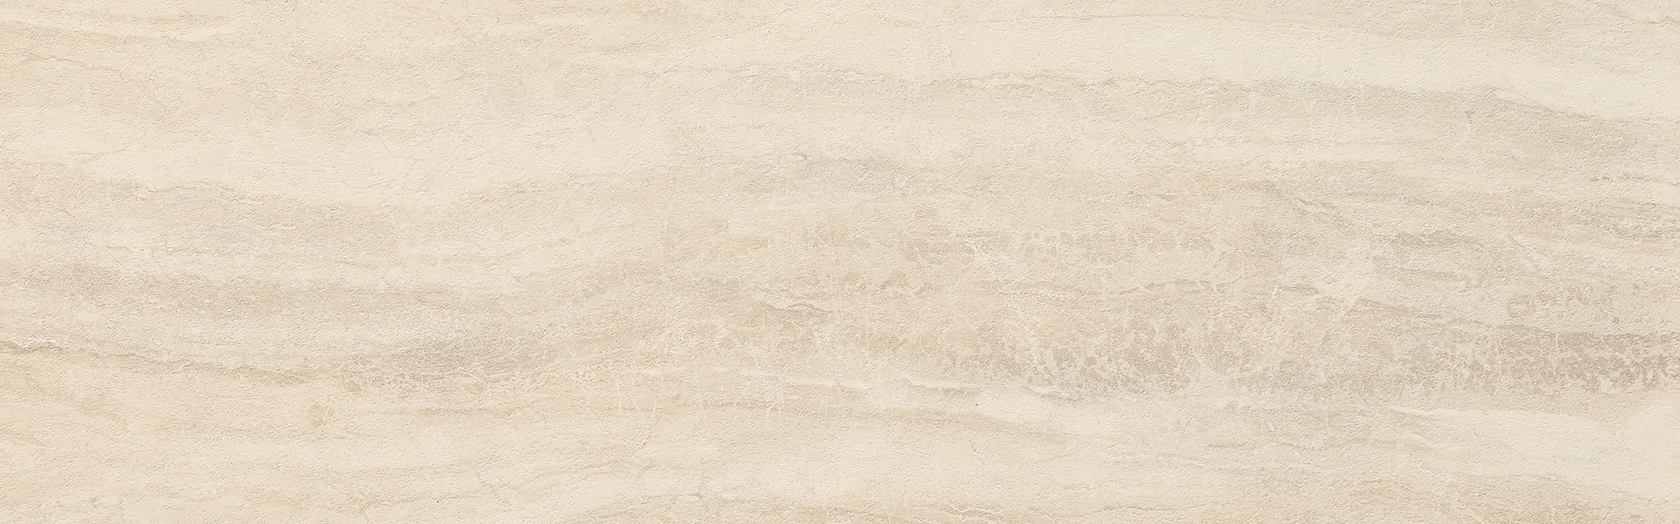 394 Champagne travertine reproduction